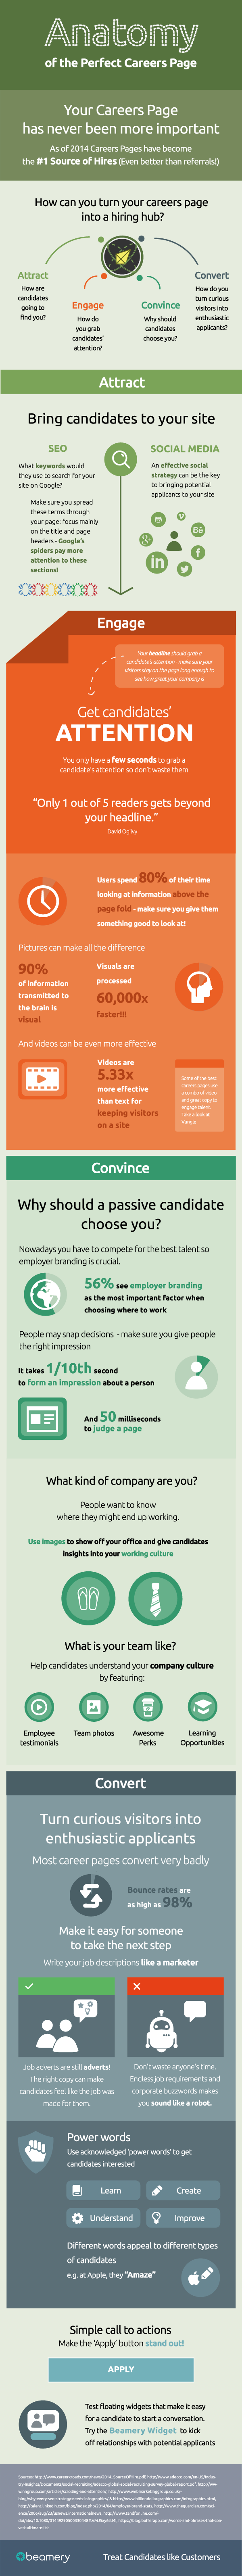 The Anatomy of the Perfect Careers Page [Infographic]